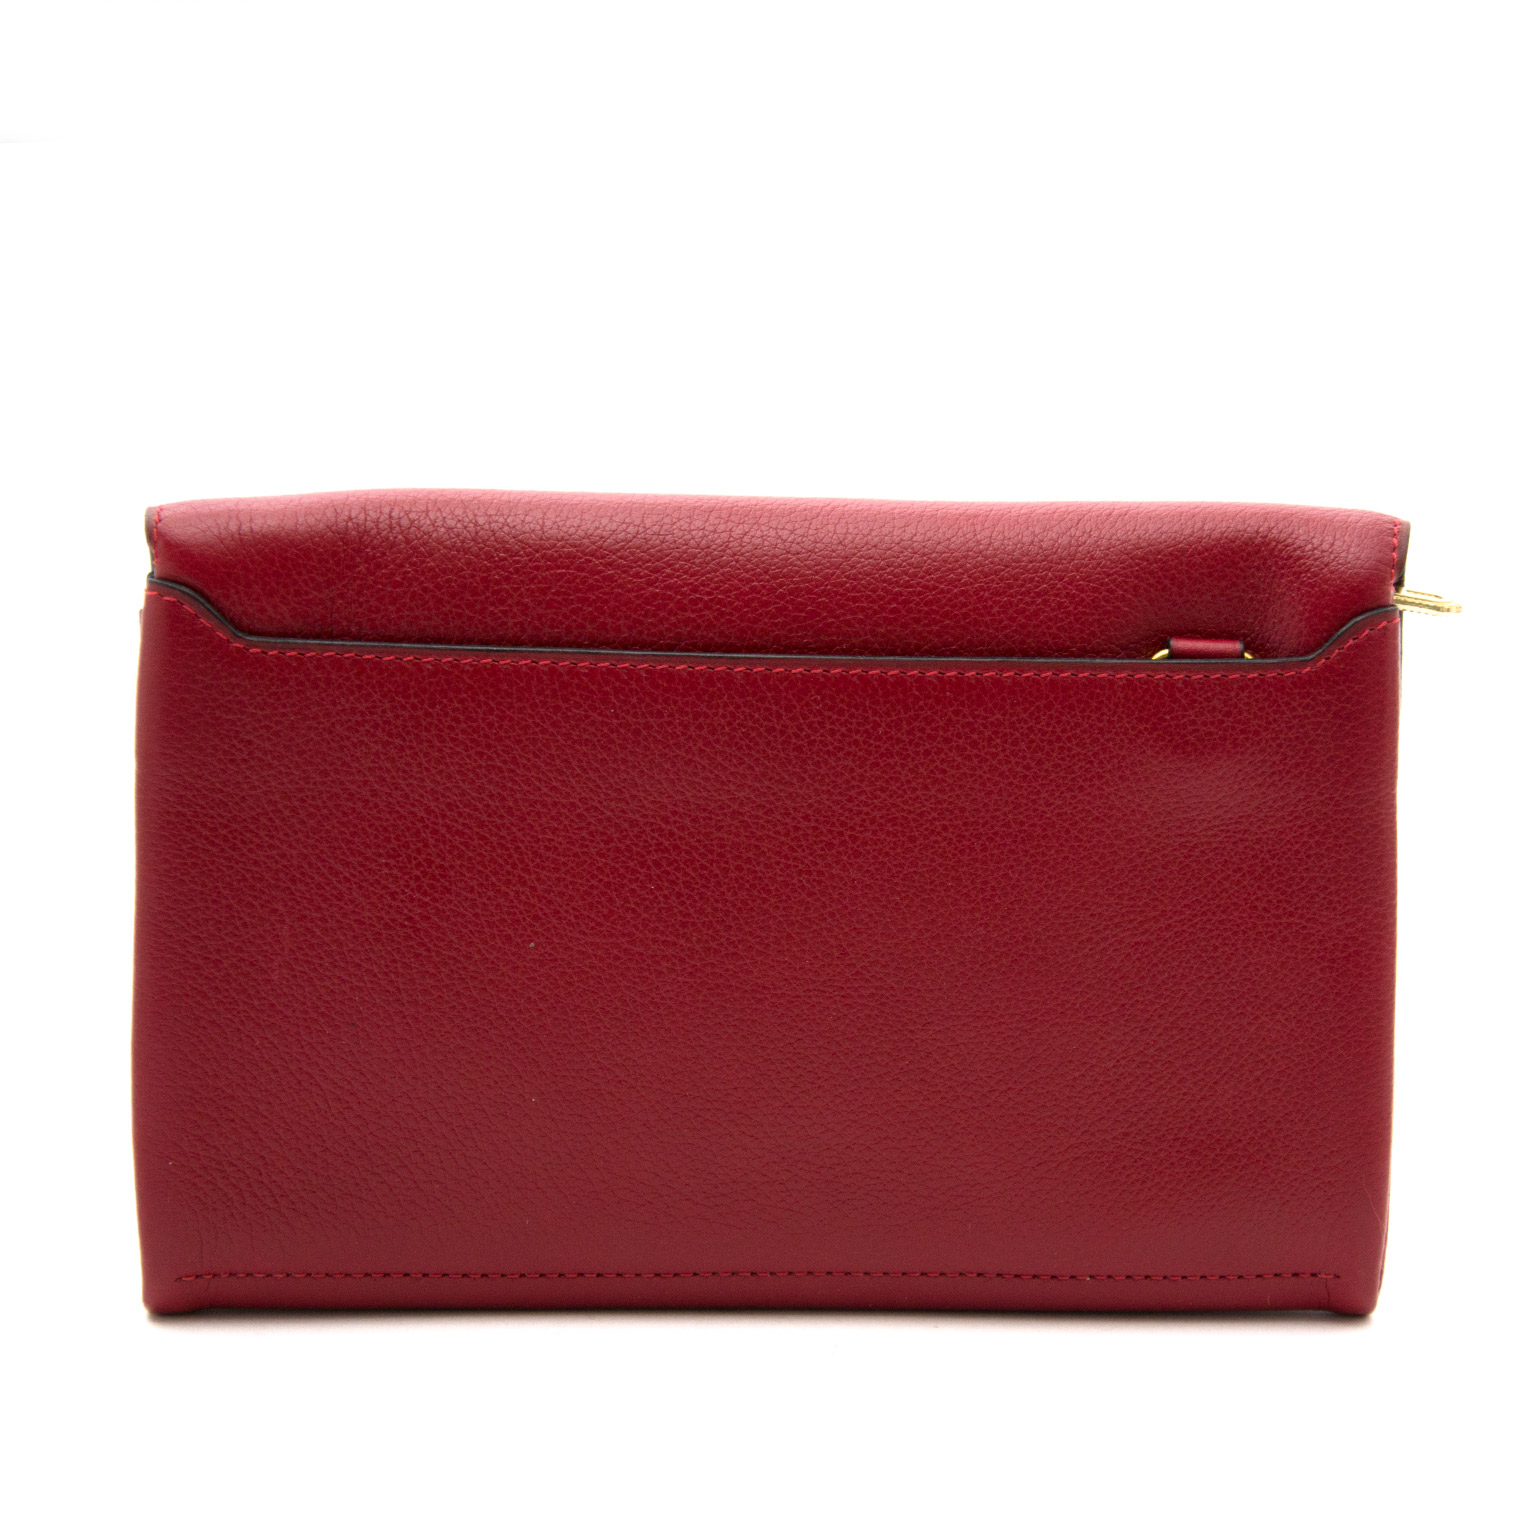 Buy safe and secure online at labellov.com delvaux Red Wallet 100% authentic